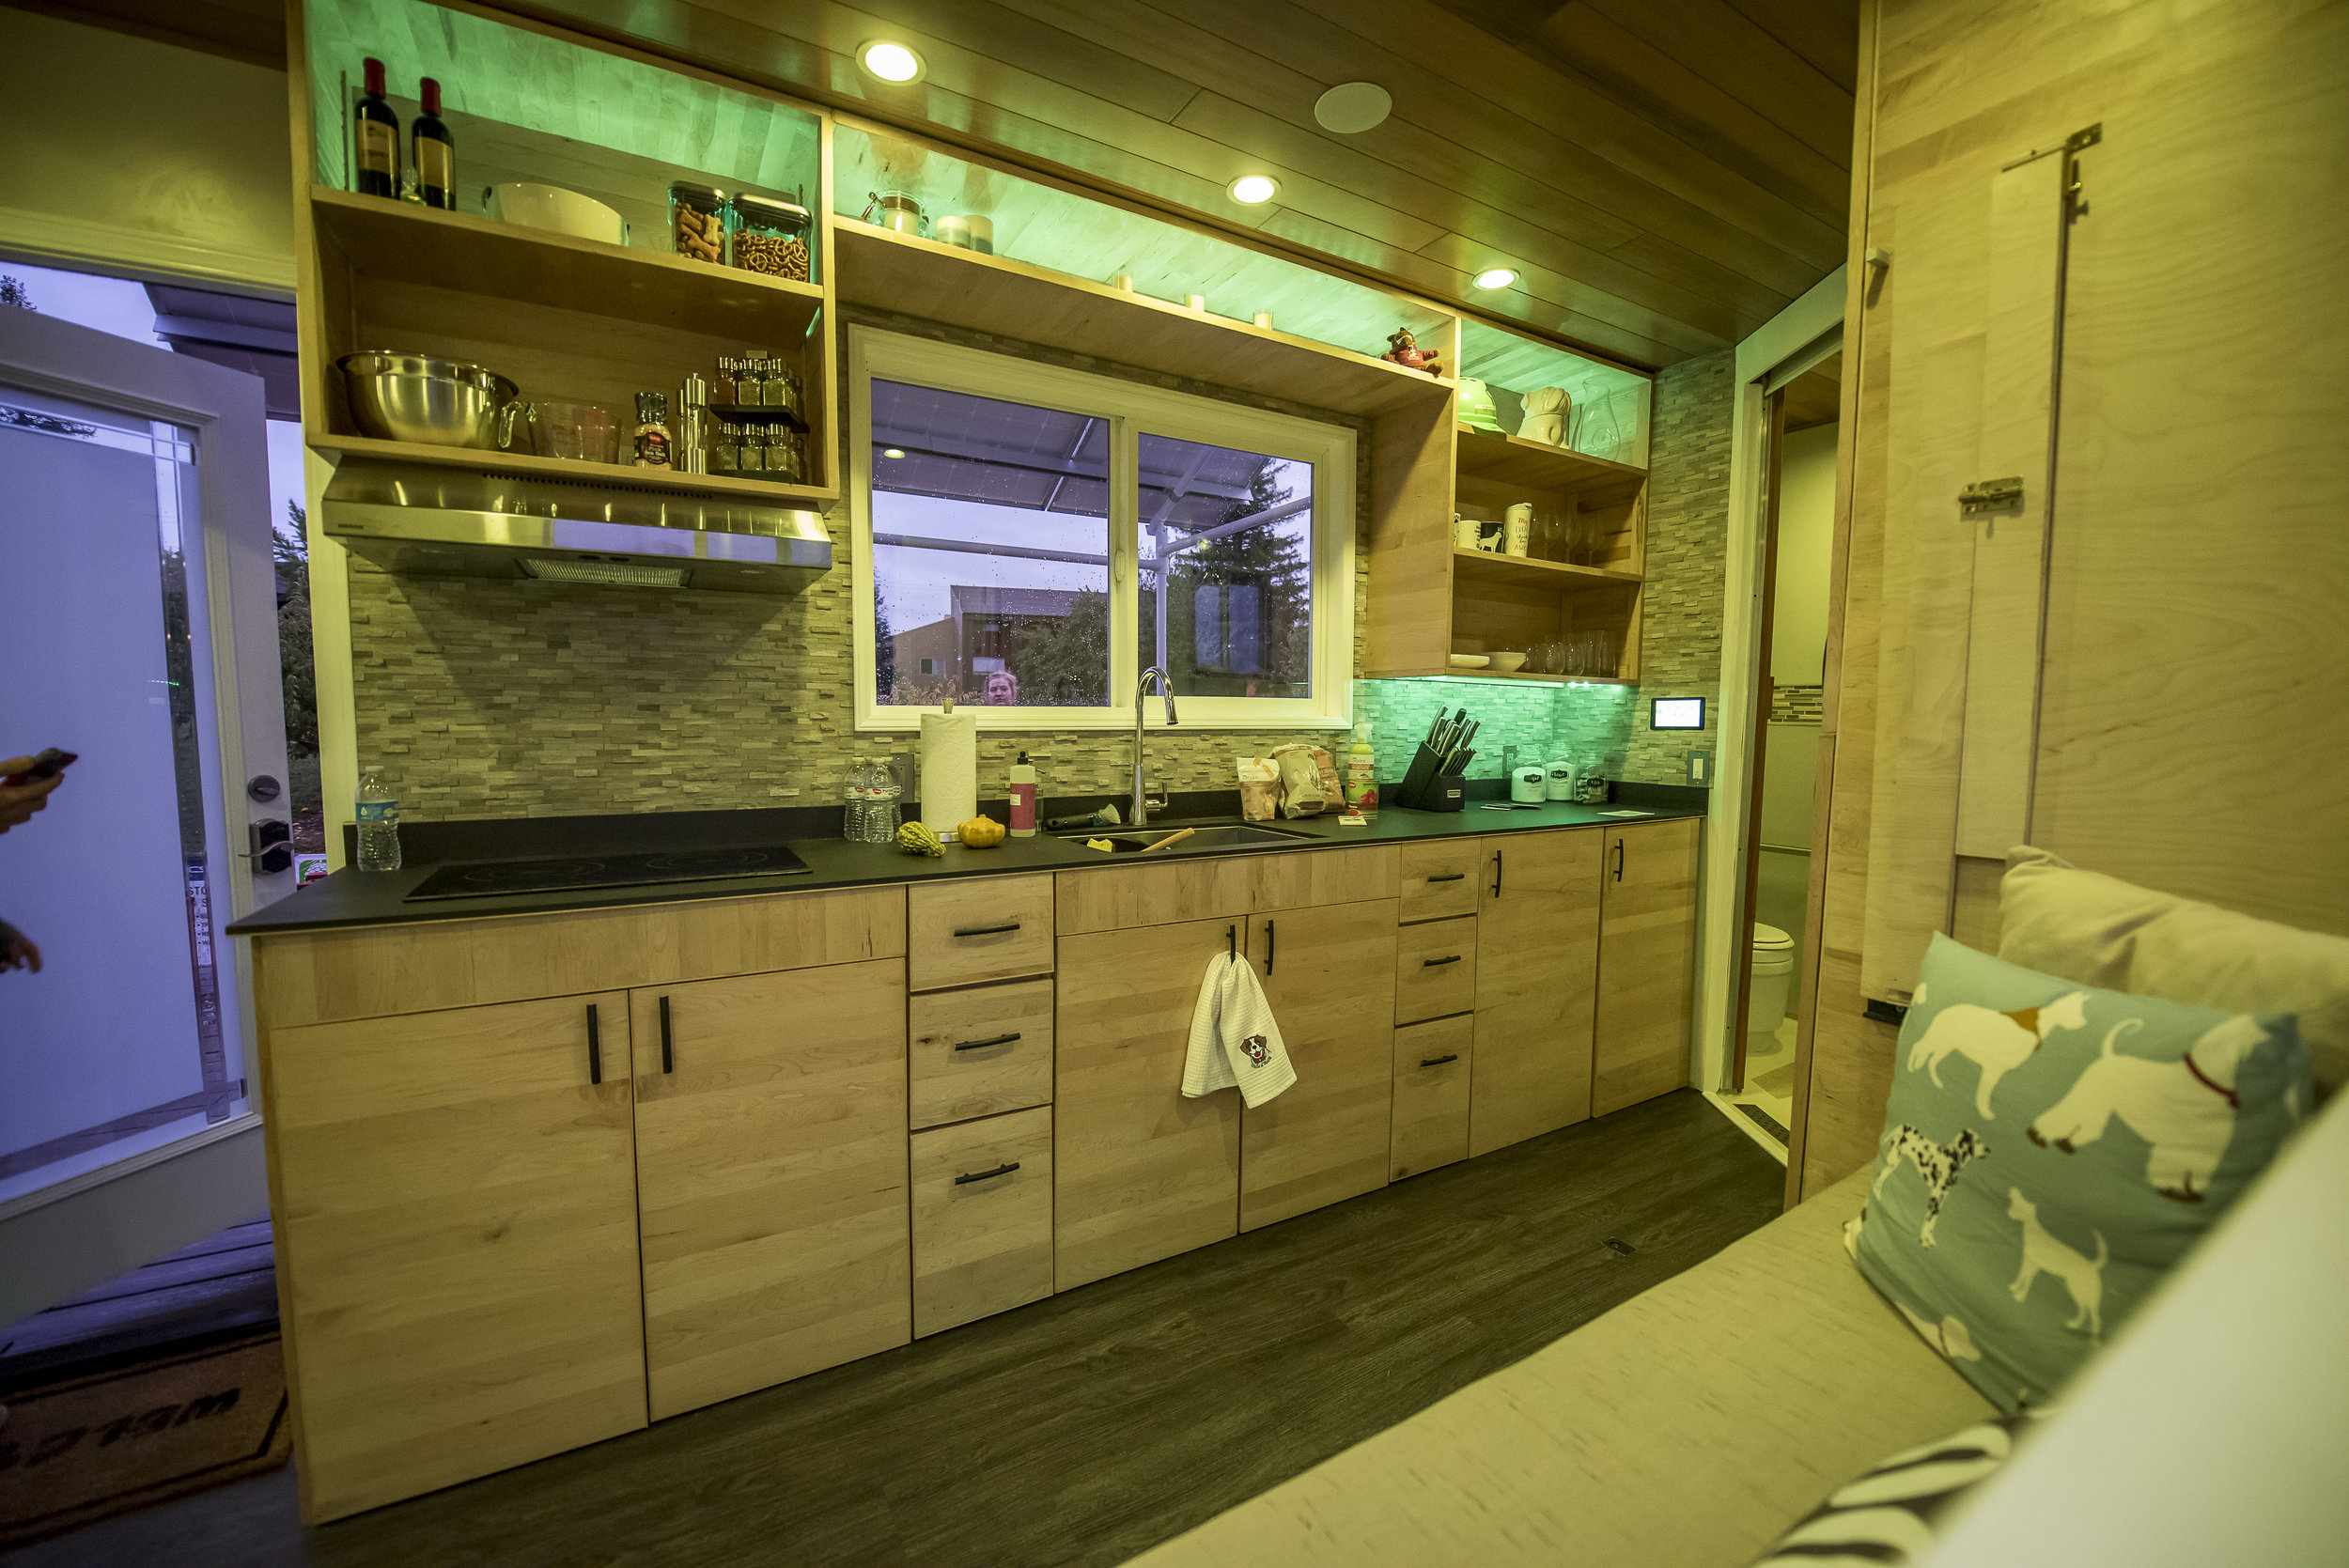 JL161014_4161_0300_TinyHouseCompetition.jpg